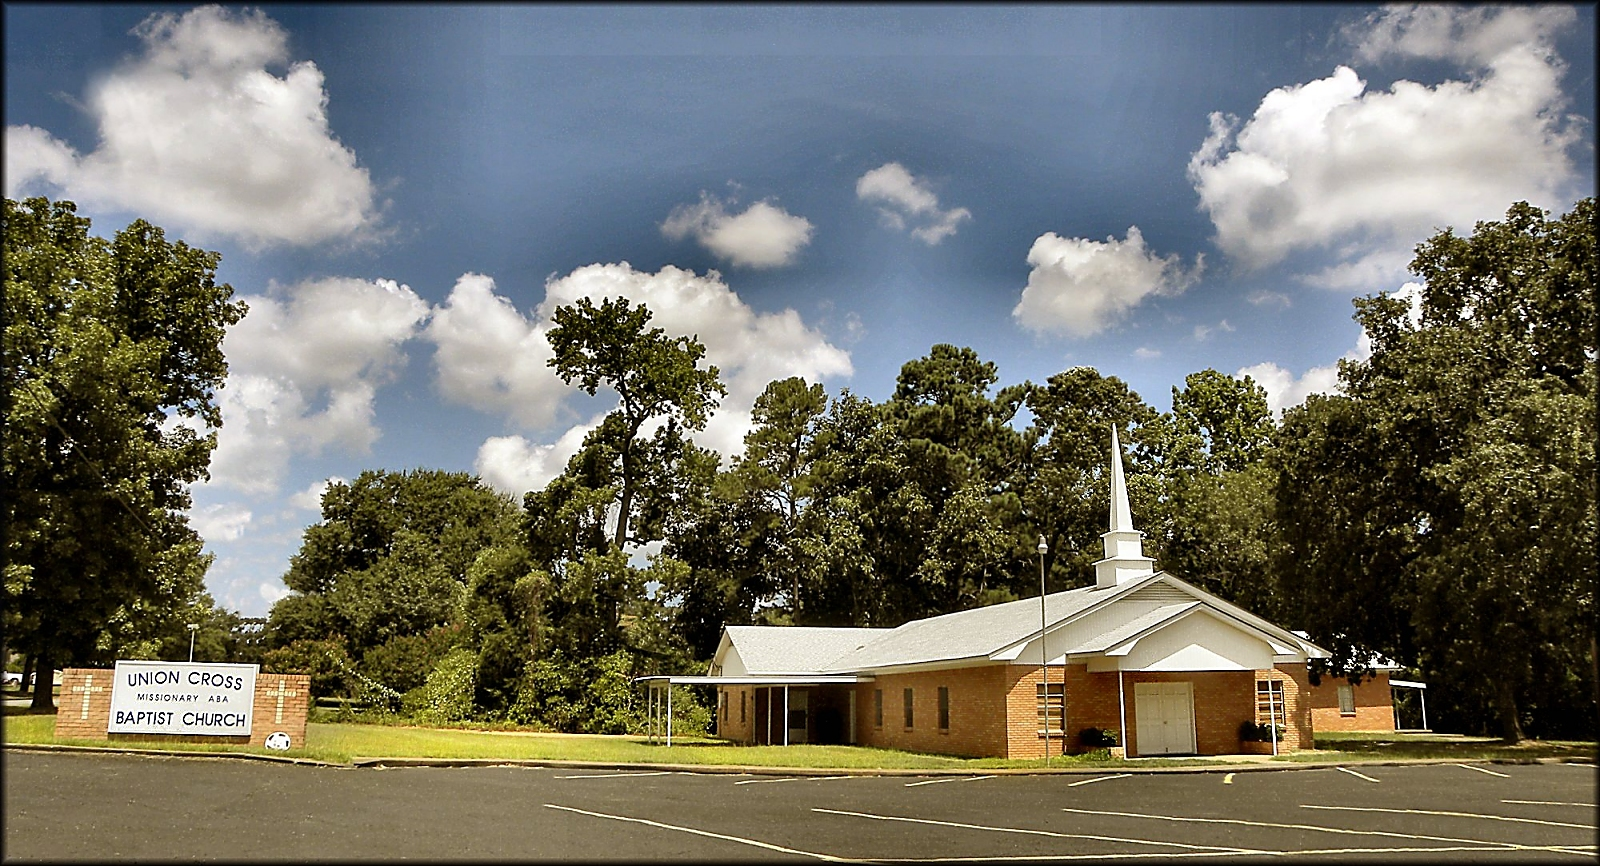 Union Cross Missionary Baptist Church in Historic Nacogdoches County